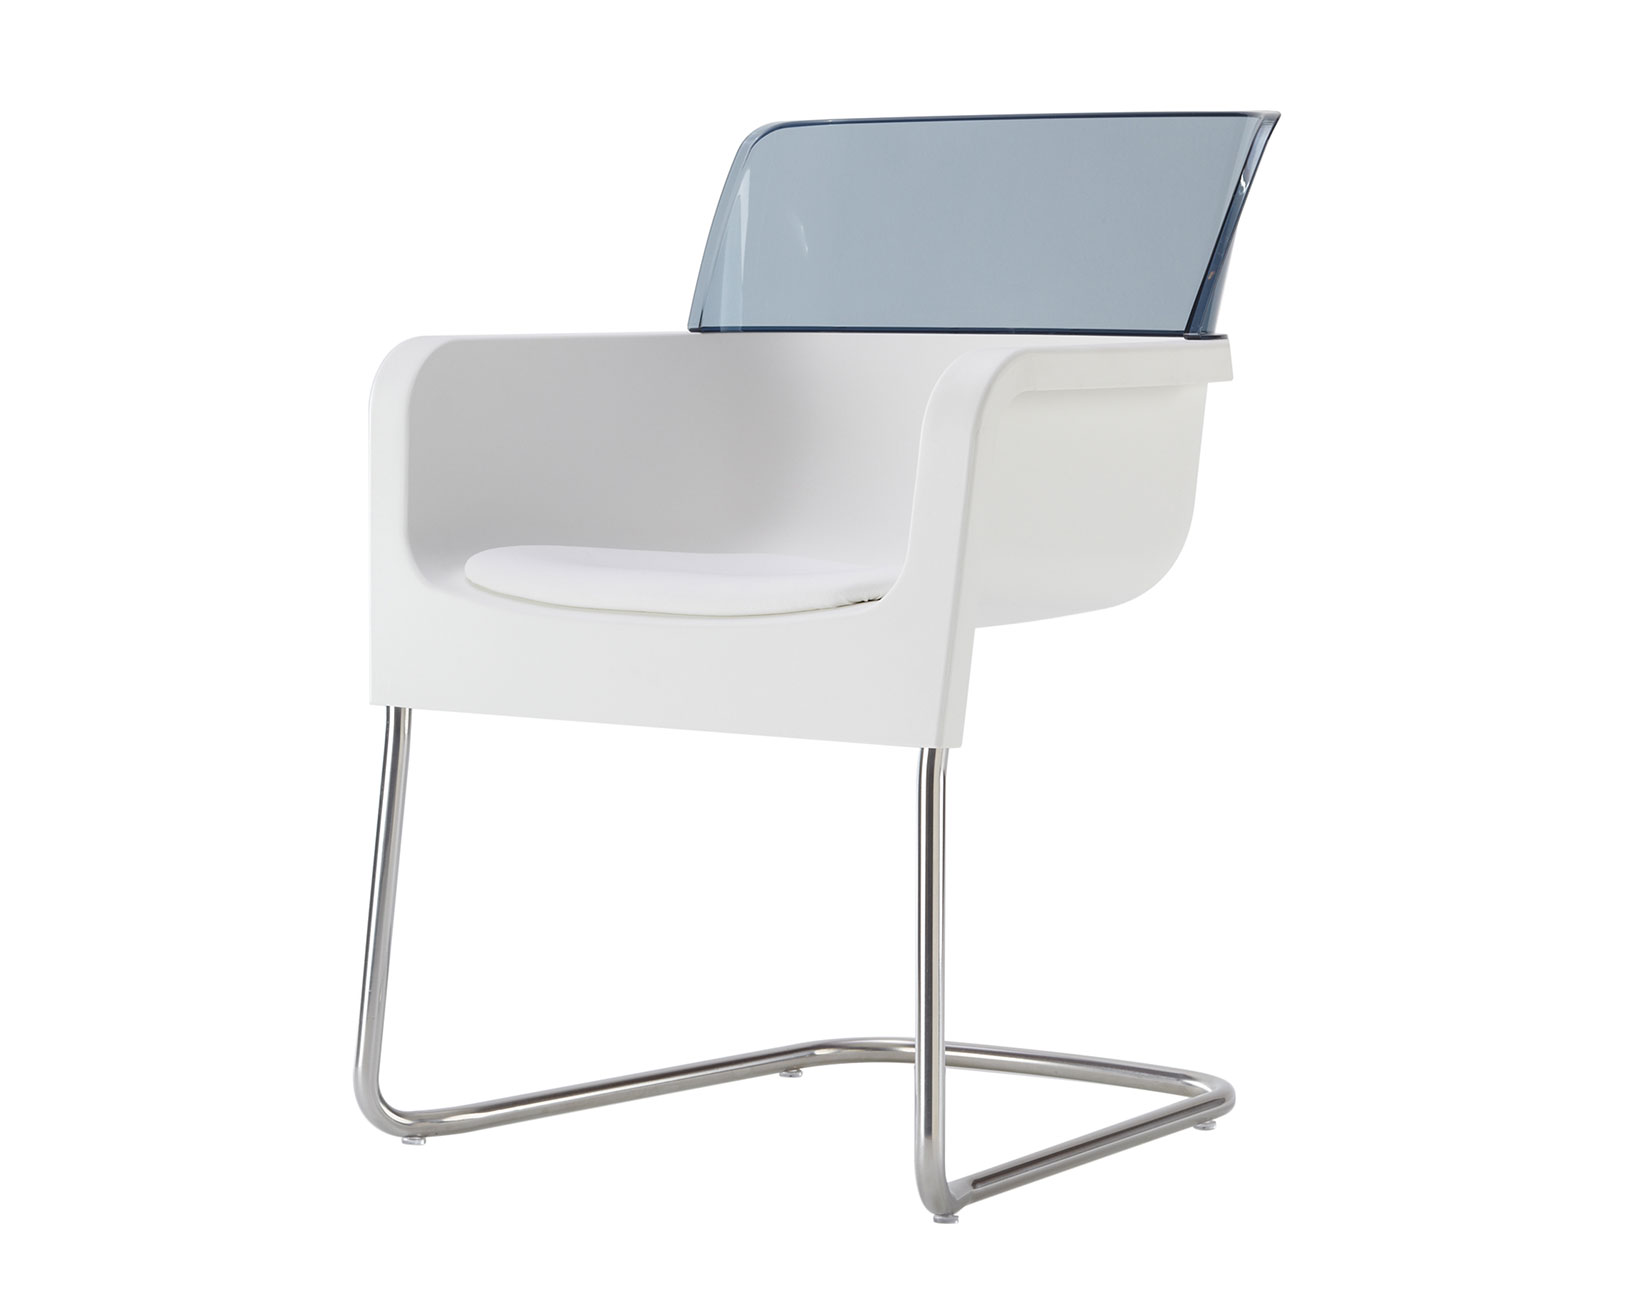 izzy olivia guest chair office furniture ethosource